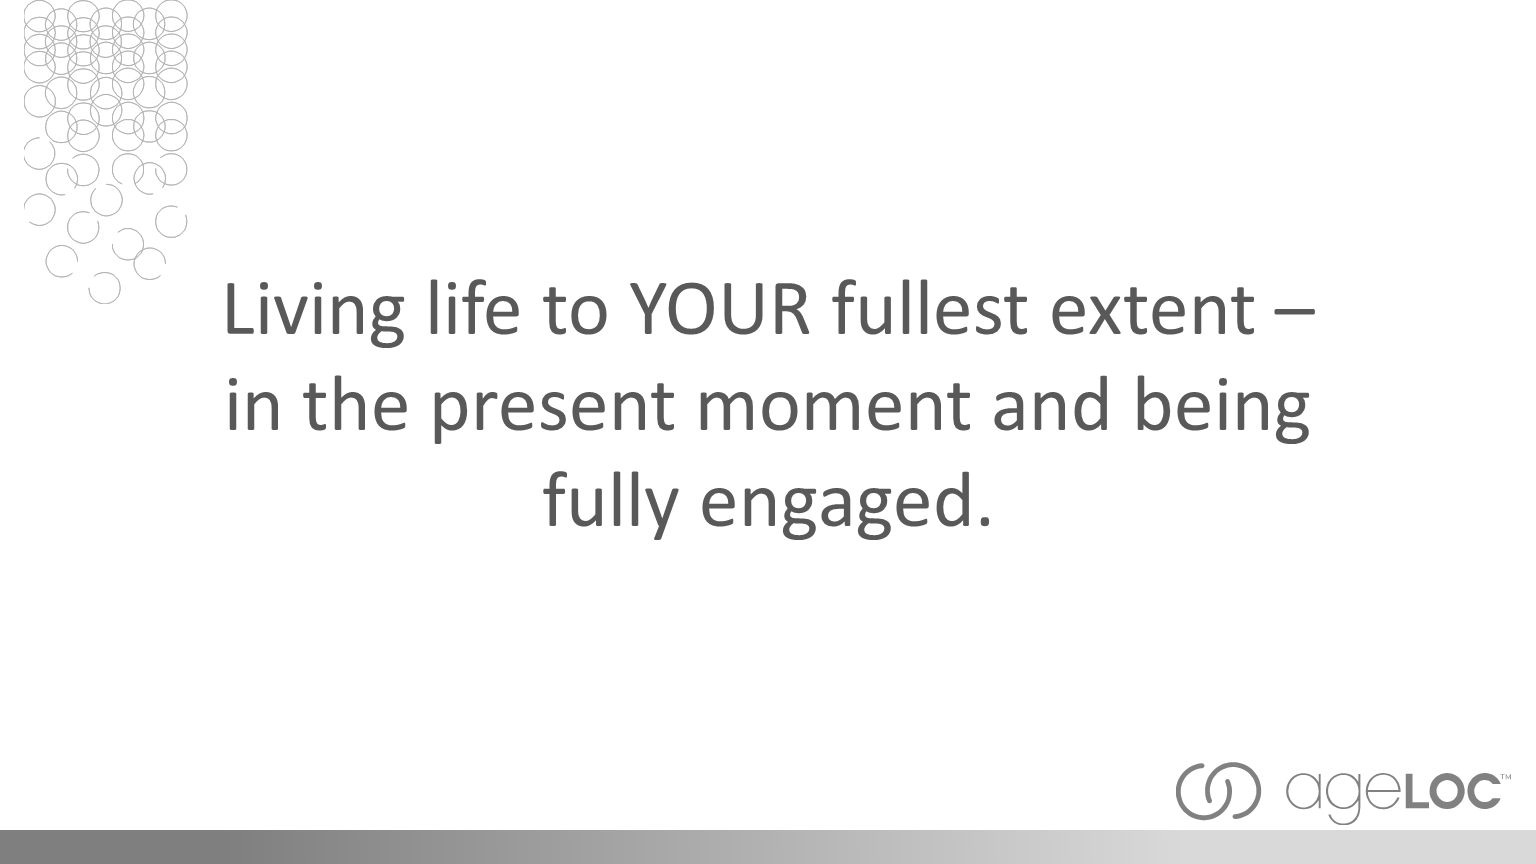 Living life to YOUR fullest extent – in the present moment and being fully engaged.